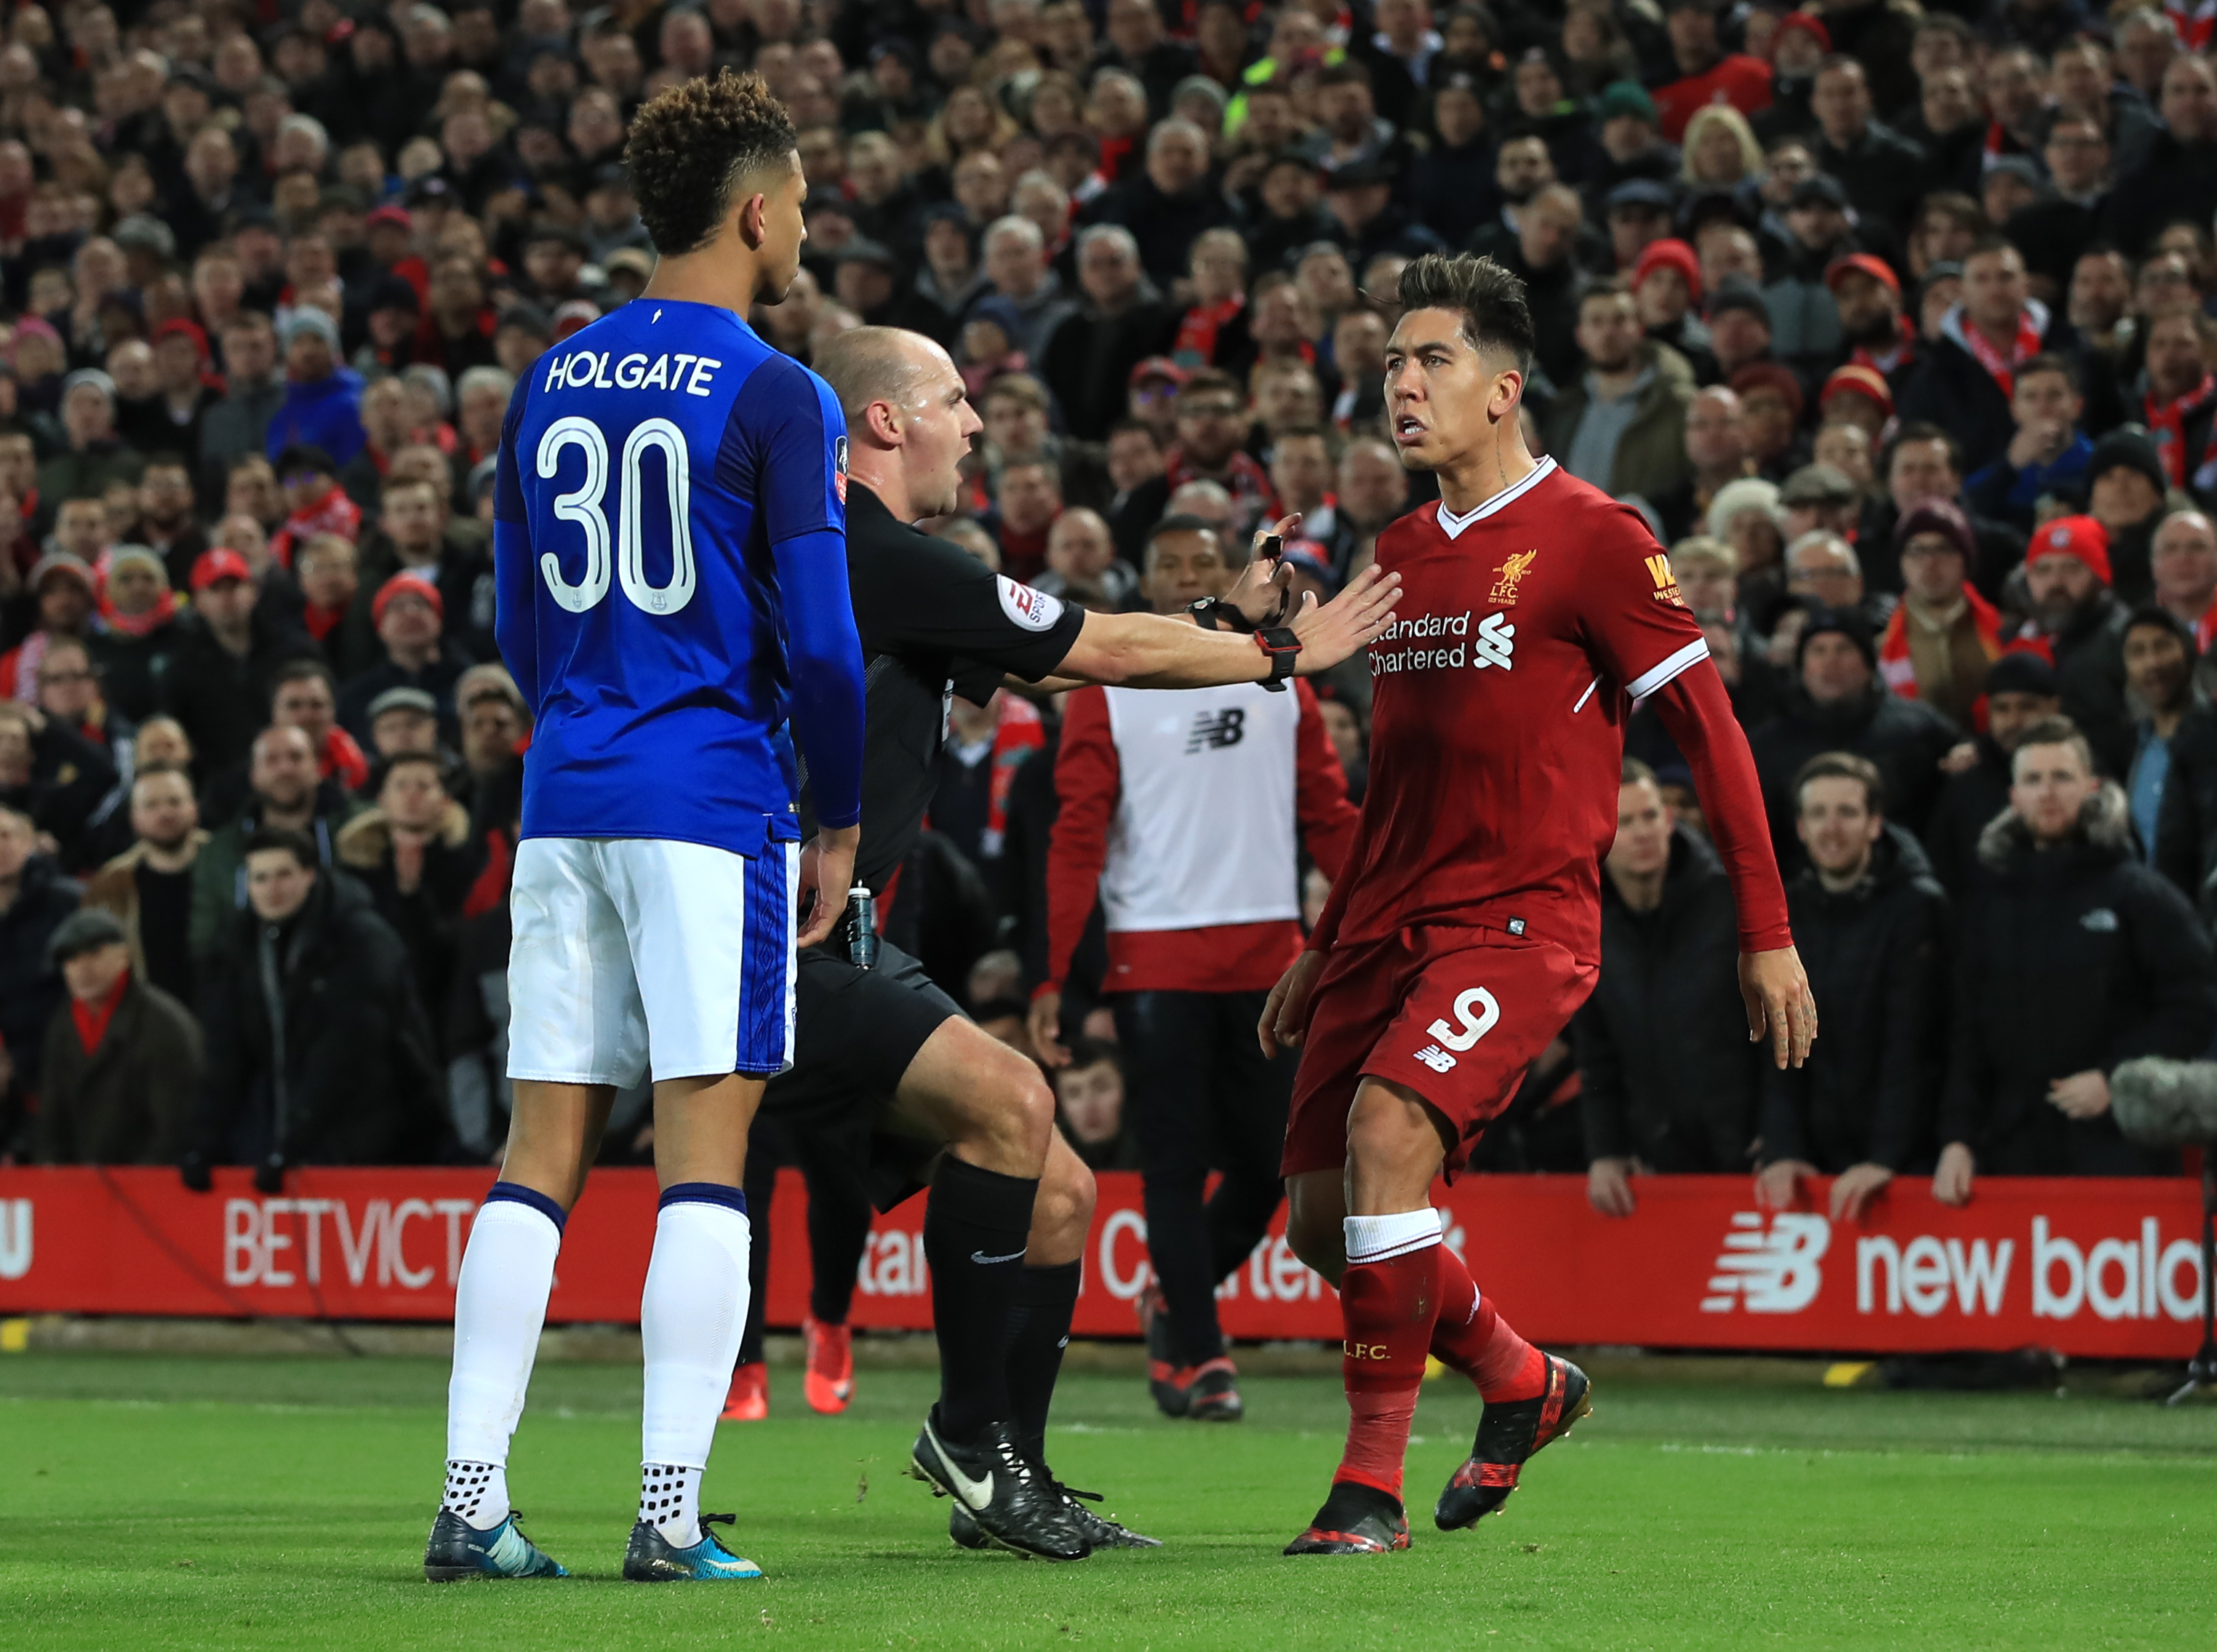 Roberto Firmino-Mason Holgate row to be investigated by FA